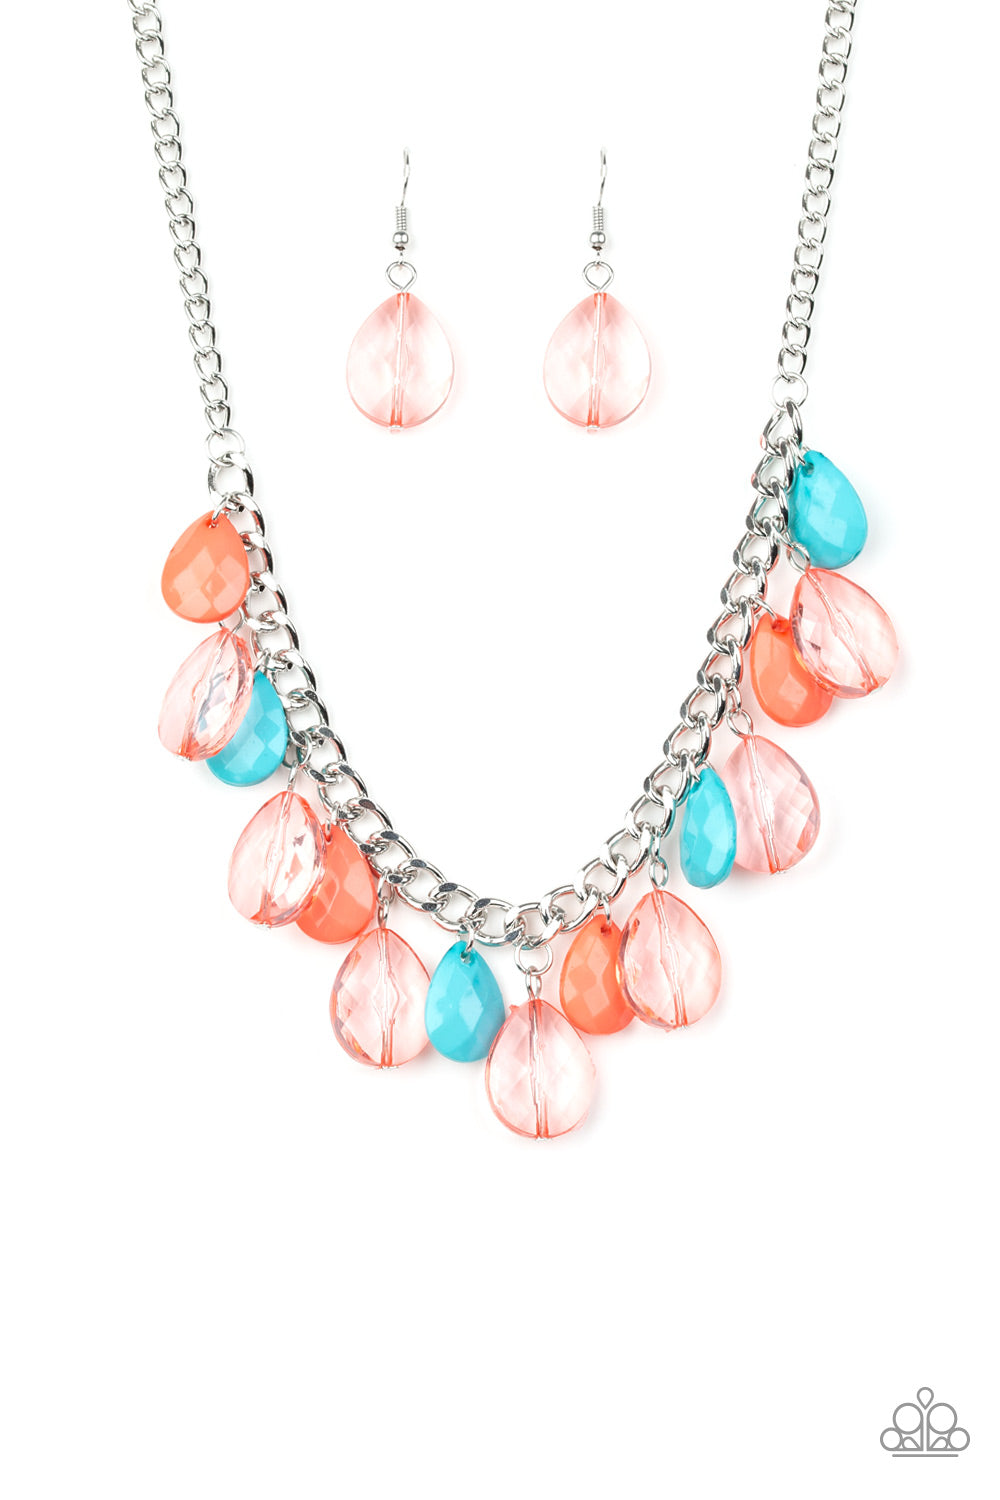 Paparazzi Accessories - Just TEAR-rific - Multicolor Necklace Set - JMJ Jewelry Collection